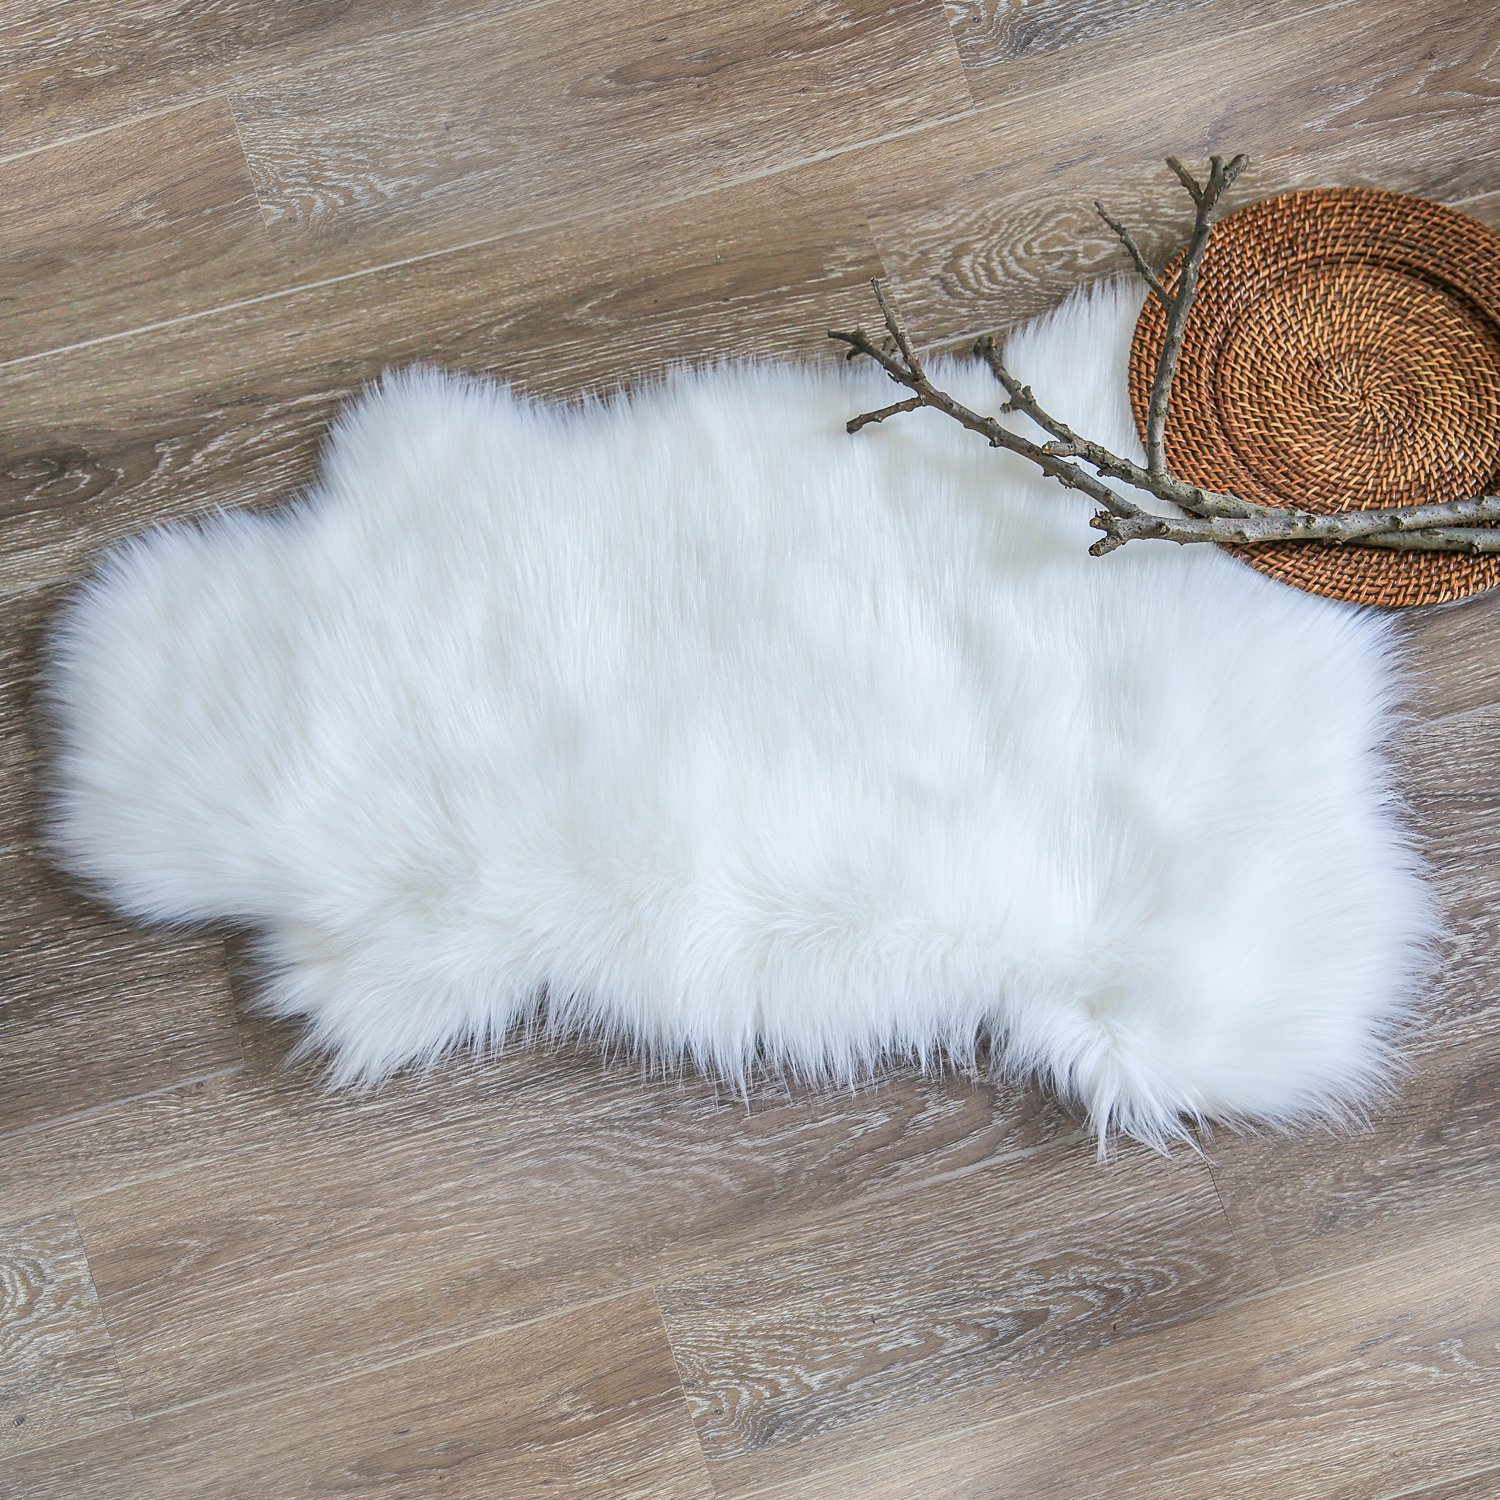 Deluxe Super Soft Faux Sheepskin Fur Chair Couch Cover Area Rug For Bedroom Floor Sofa Living Room 2 x 3 Feet White Color